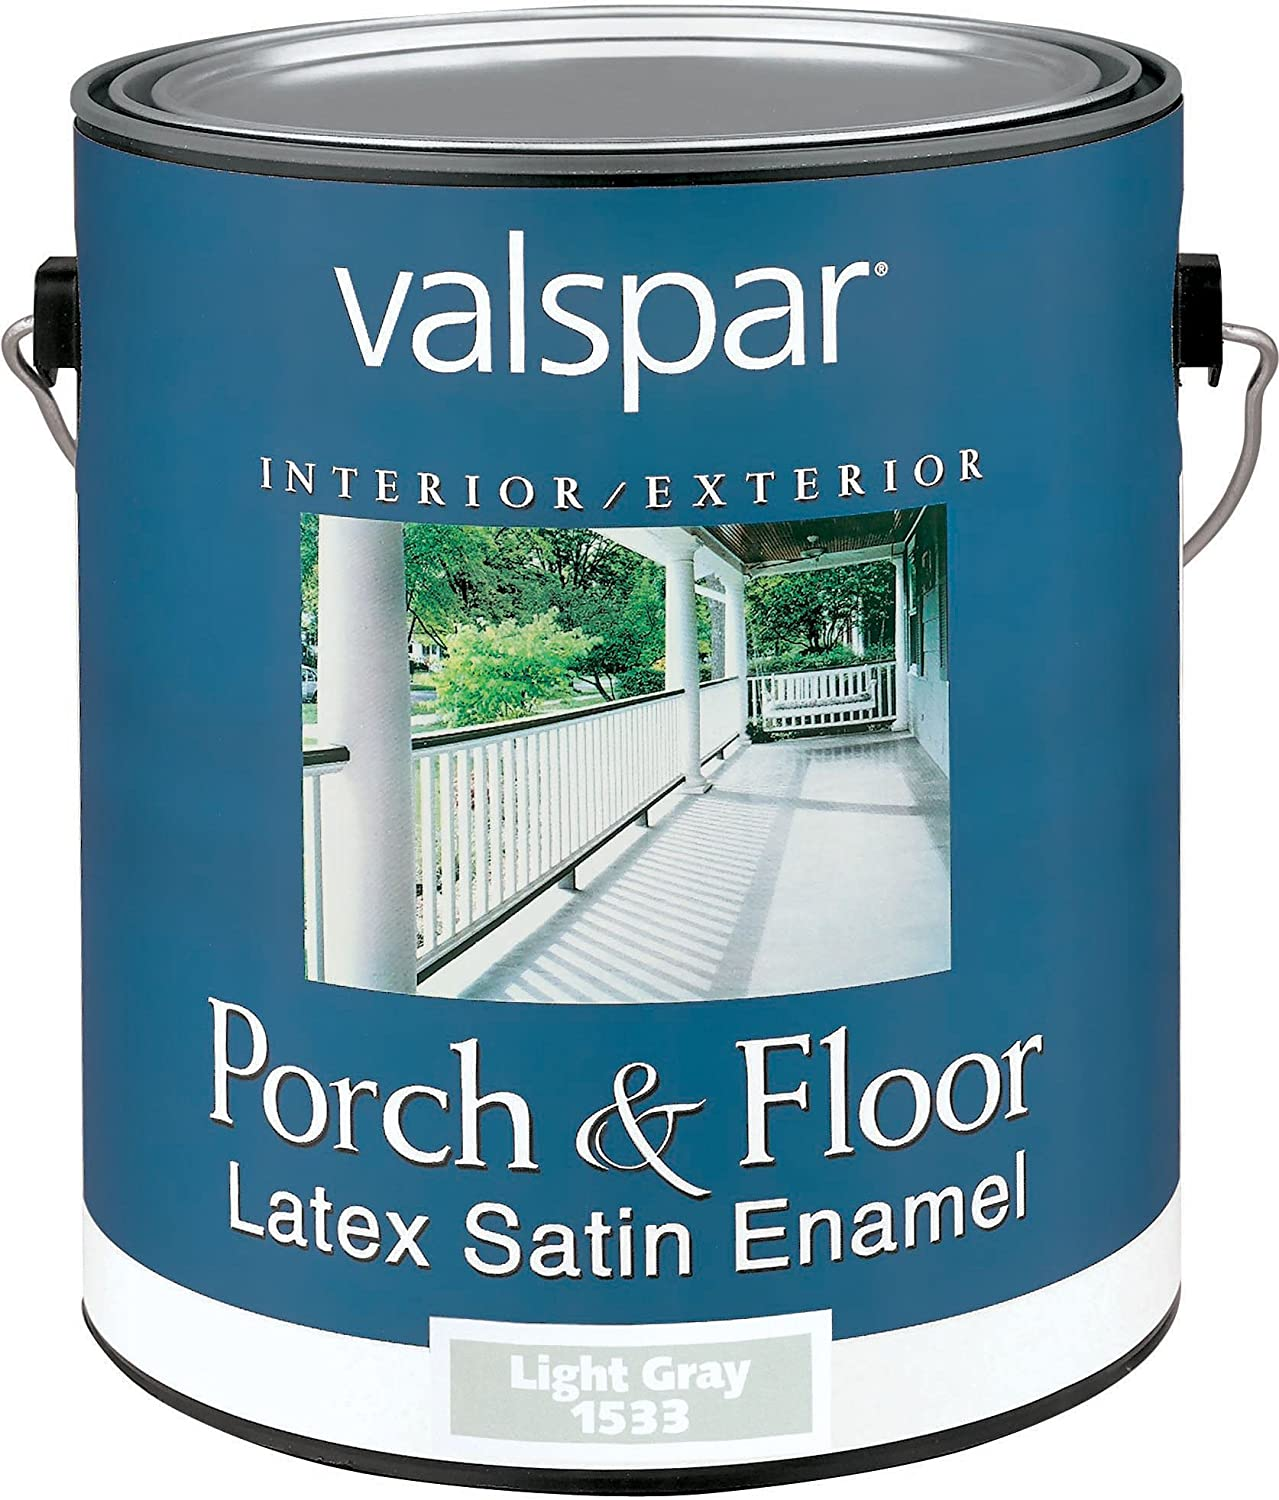 Valspar 1533 Porch and Floor Latex Satin Enamel